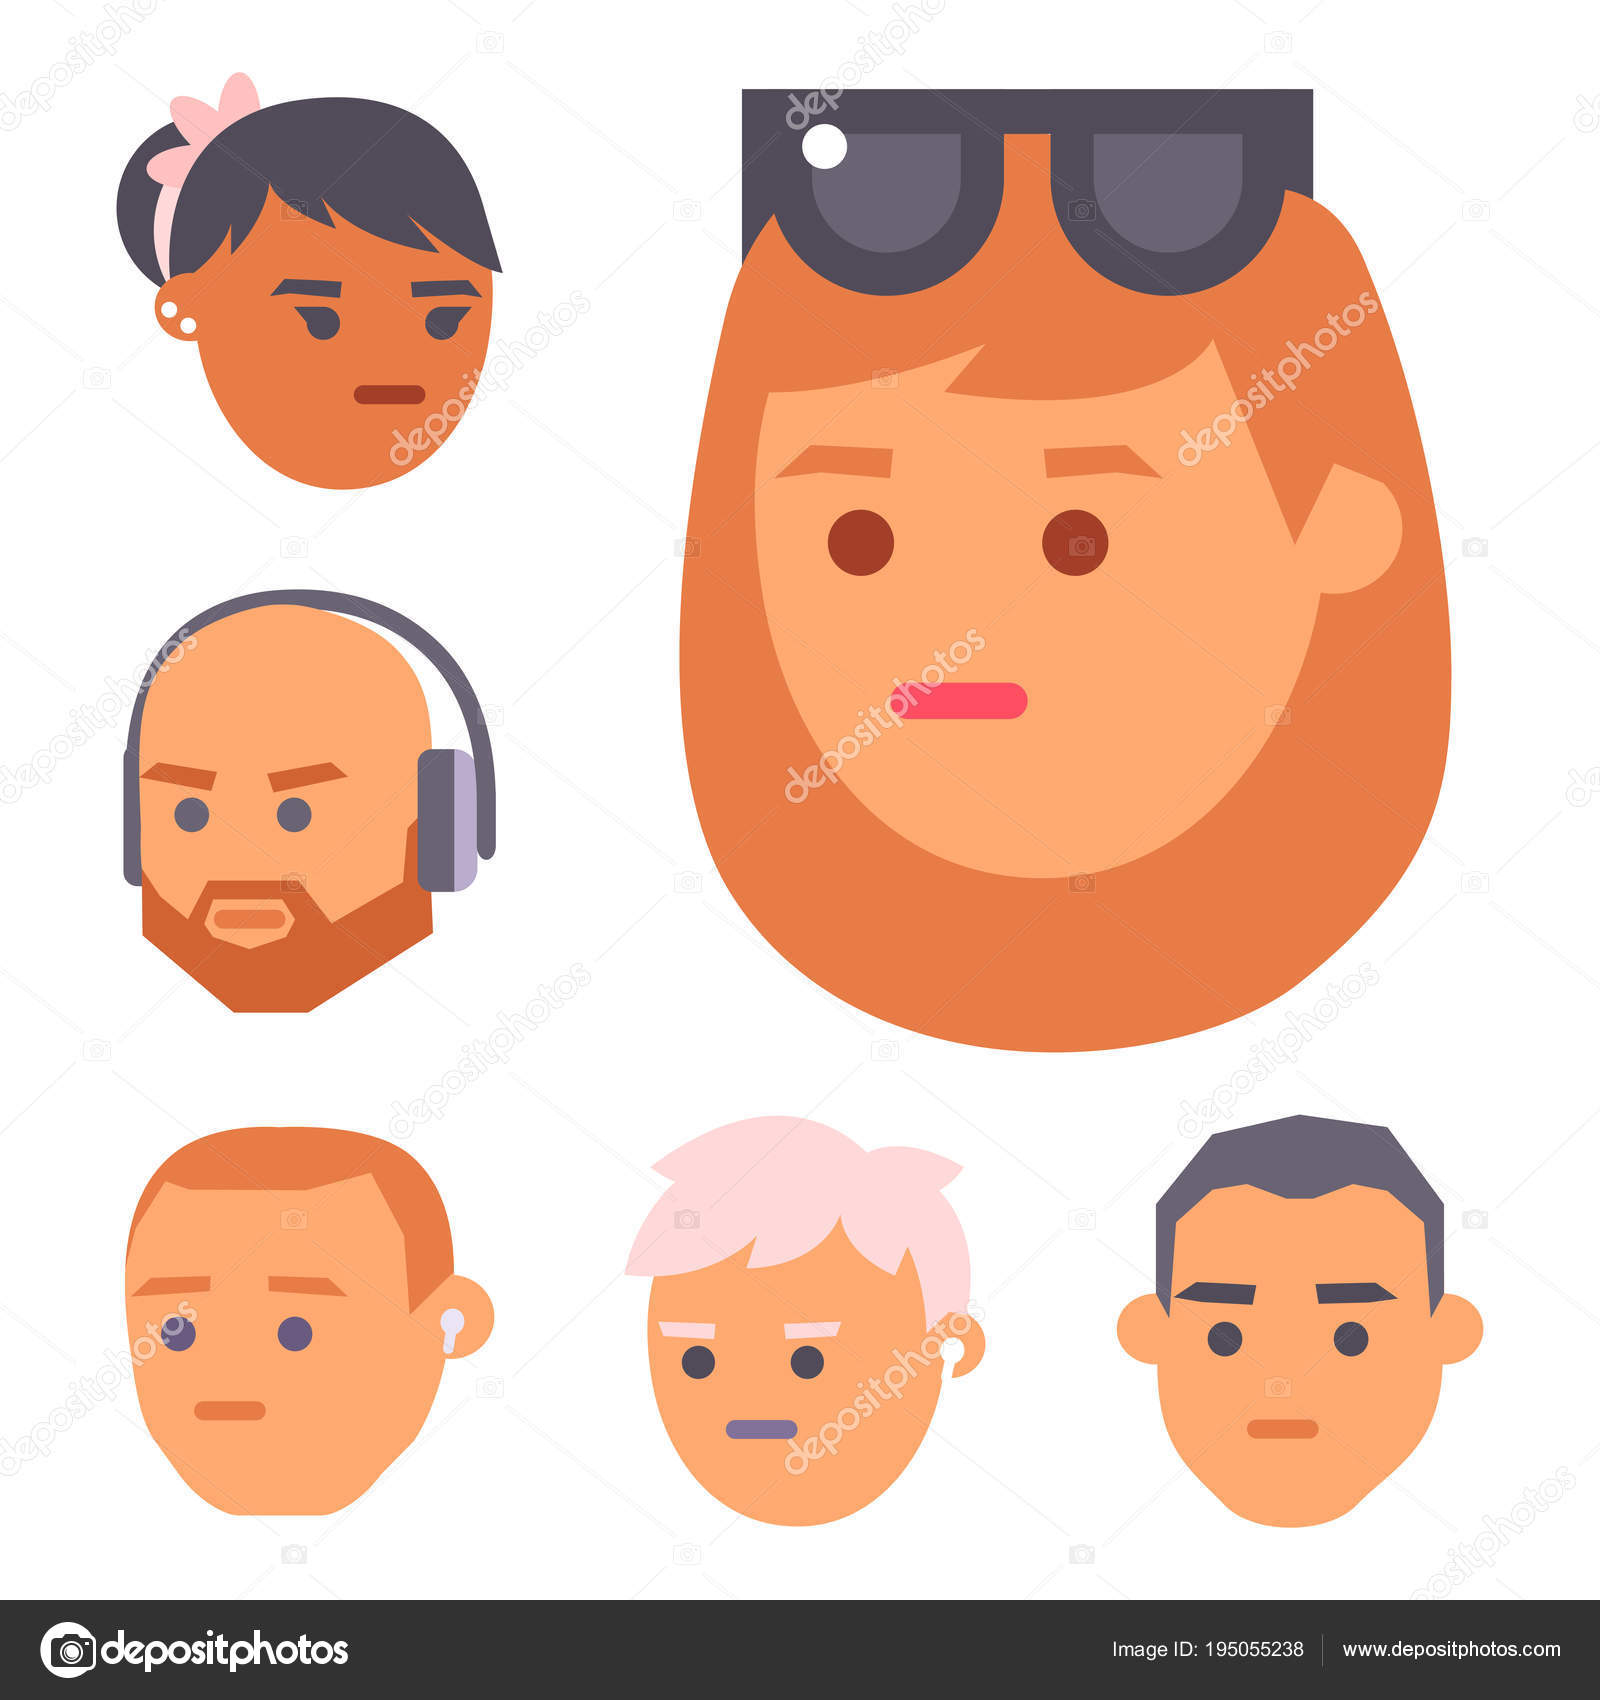 Eemotion Vector People Faces Cartoon Emotions Avatar Illustration